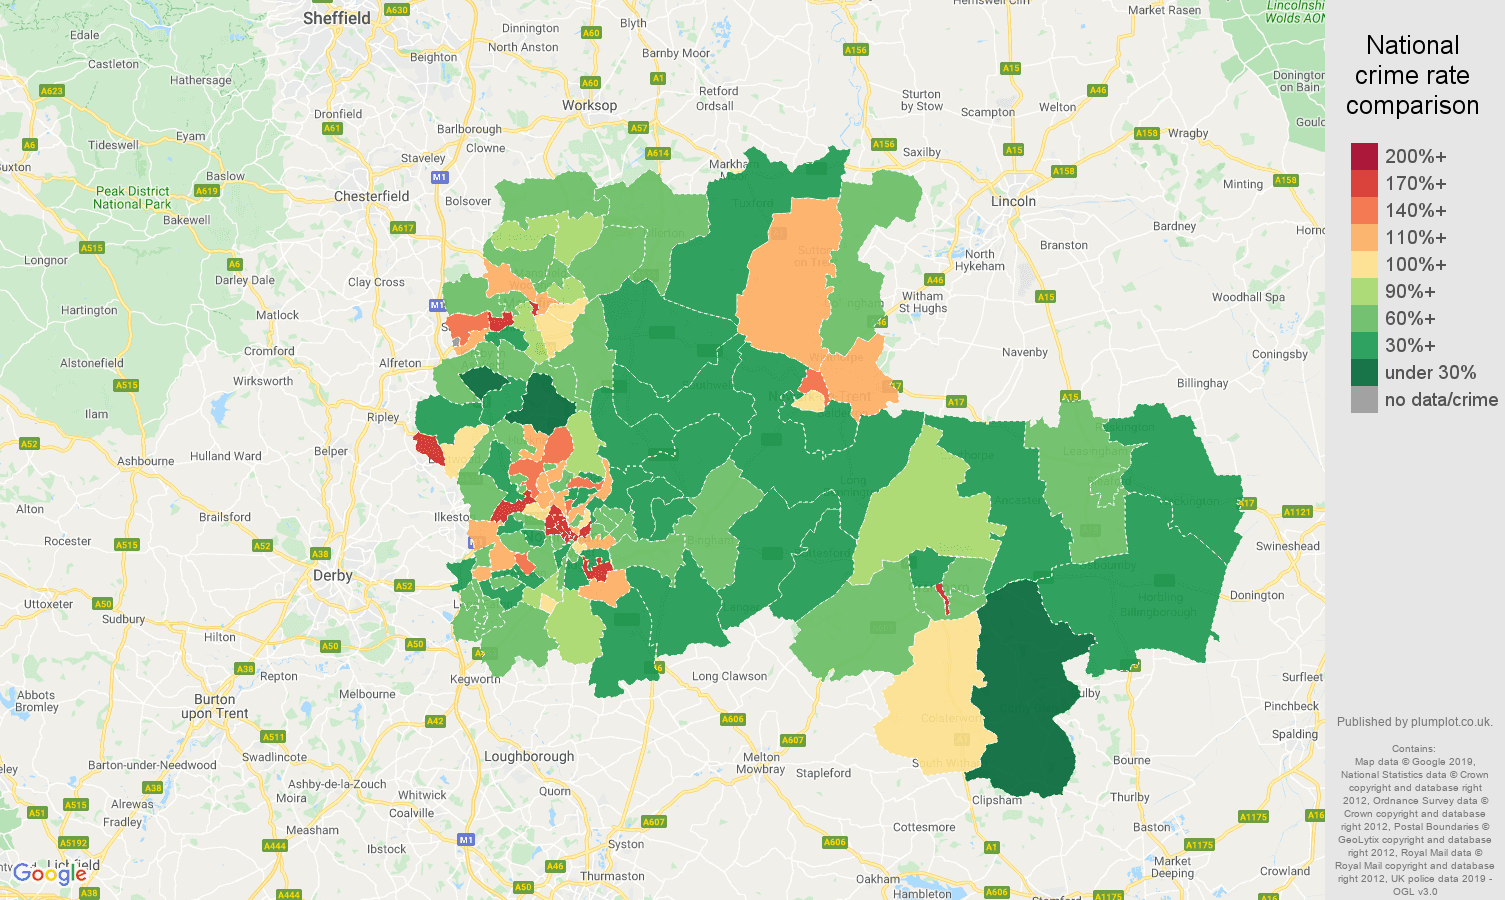 Nottingham other theft crime rate comparison map